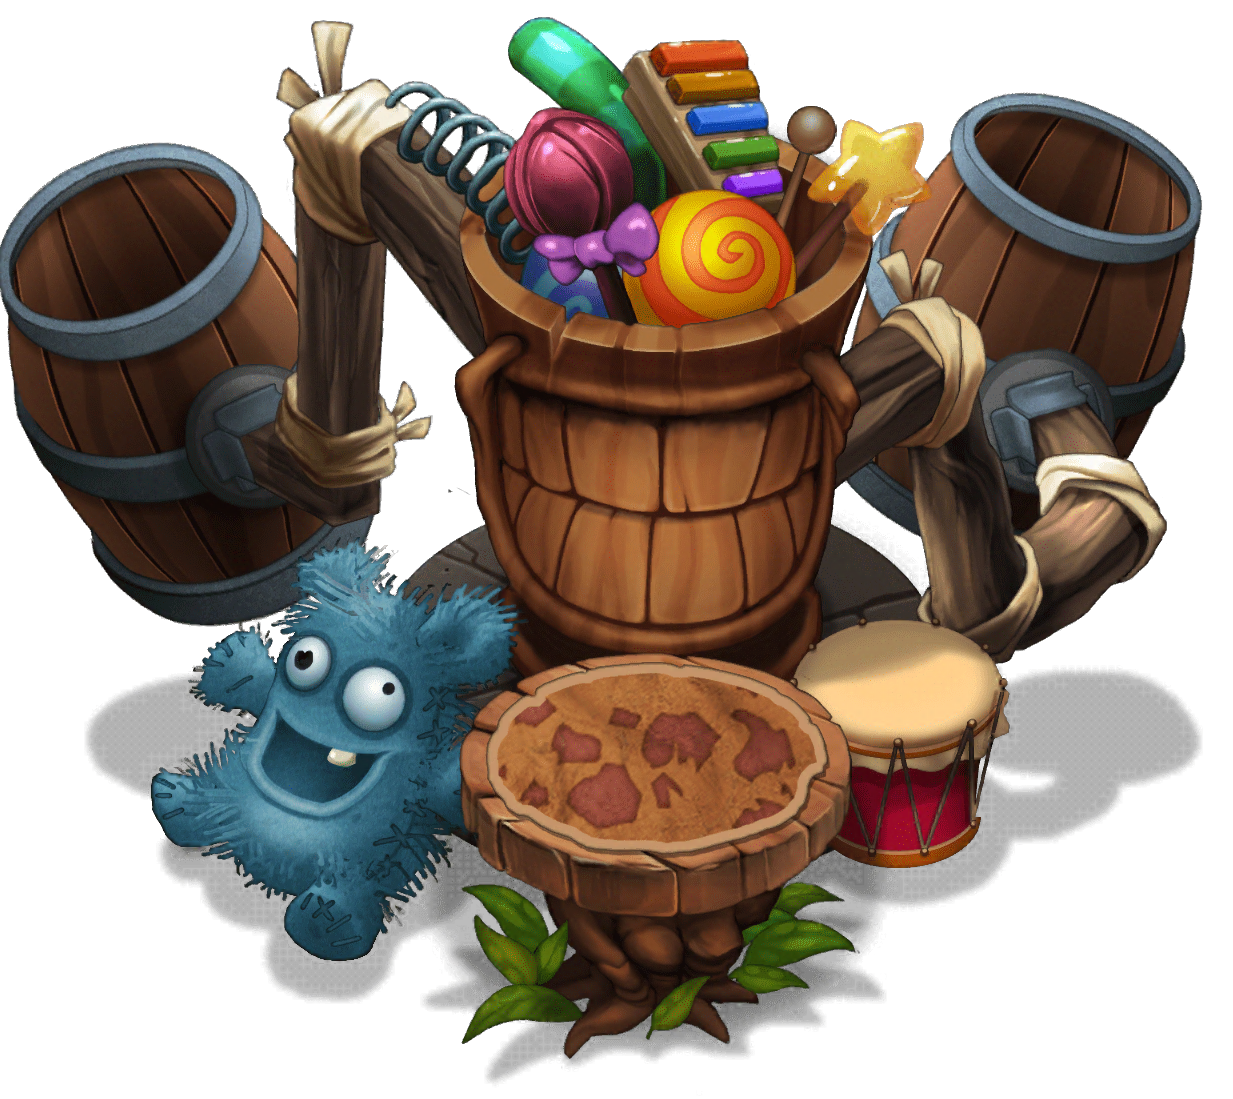 Factory clipart food processing plant. Toy my singing monsters